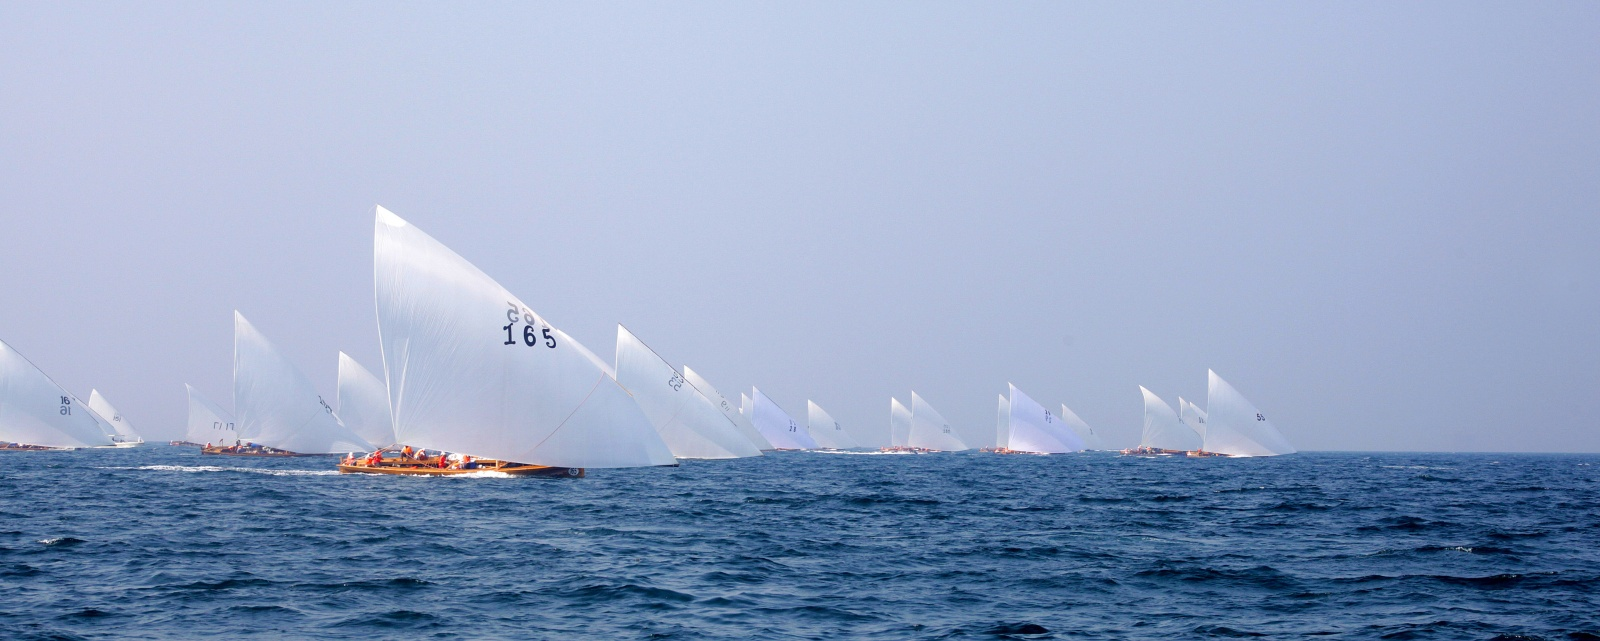 Abu Dhabi Dhow Sailing Race 43FT- Final Round